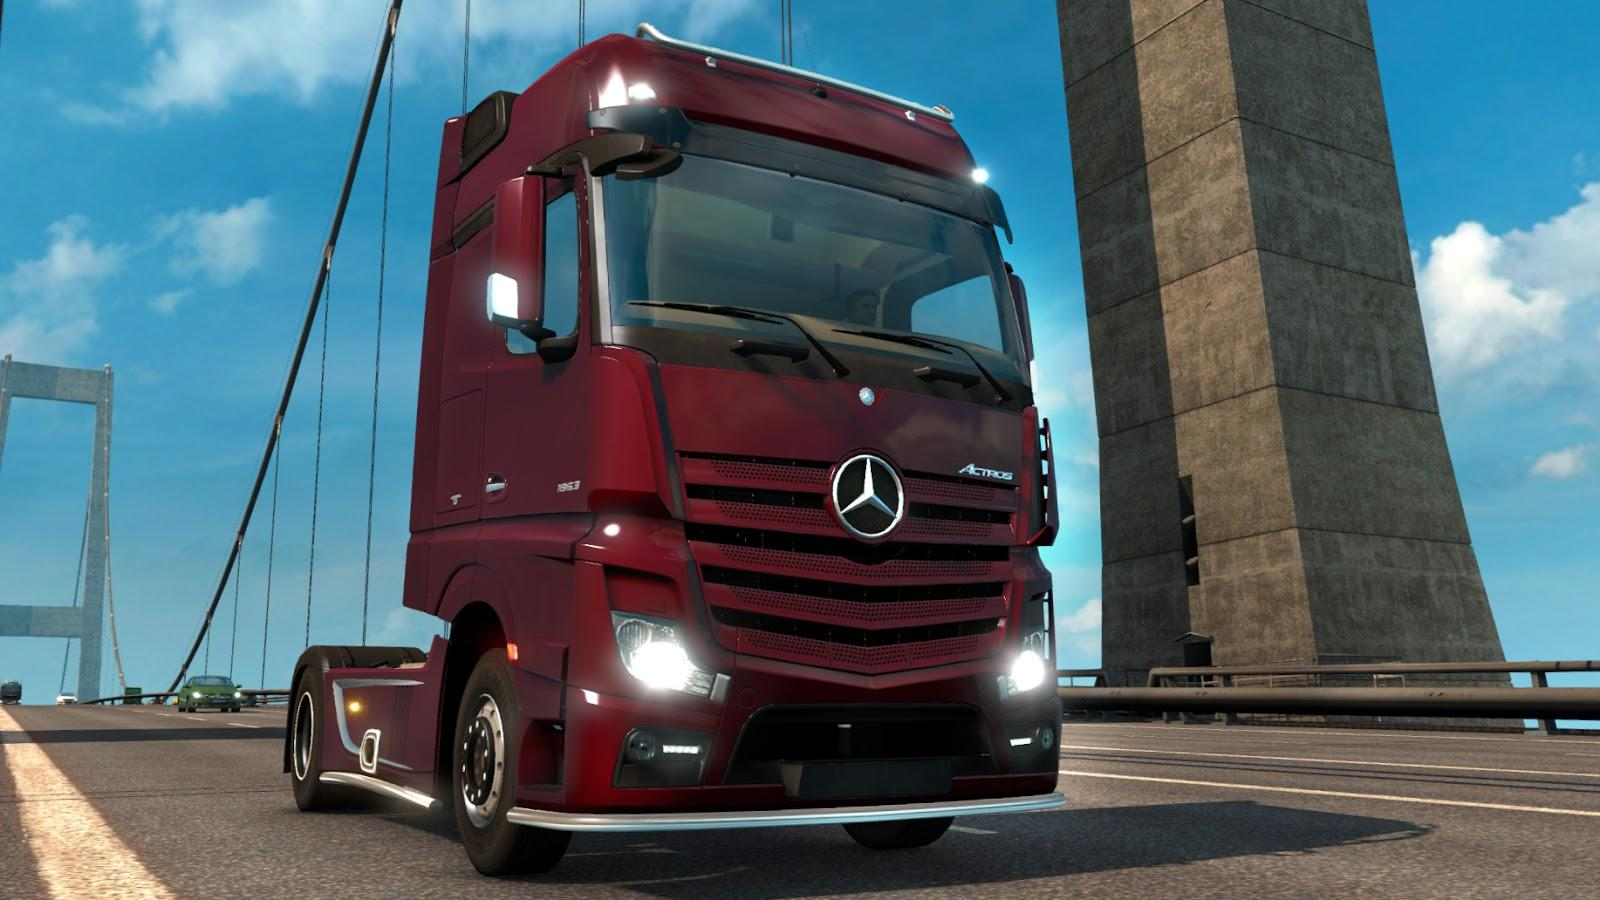 1-18-open-beta-featuring-mercedes-benz-new-actros-available-now_1